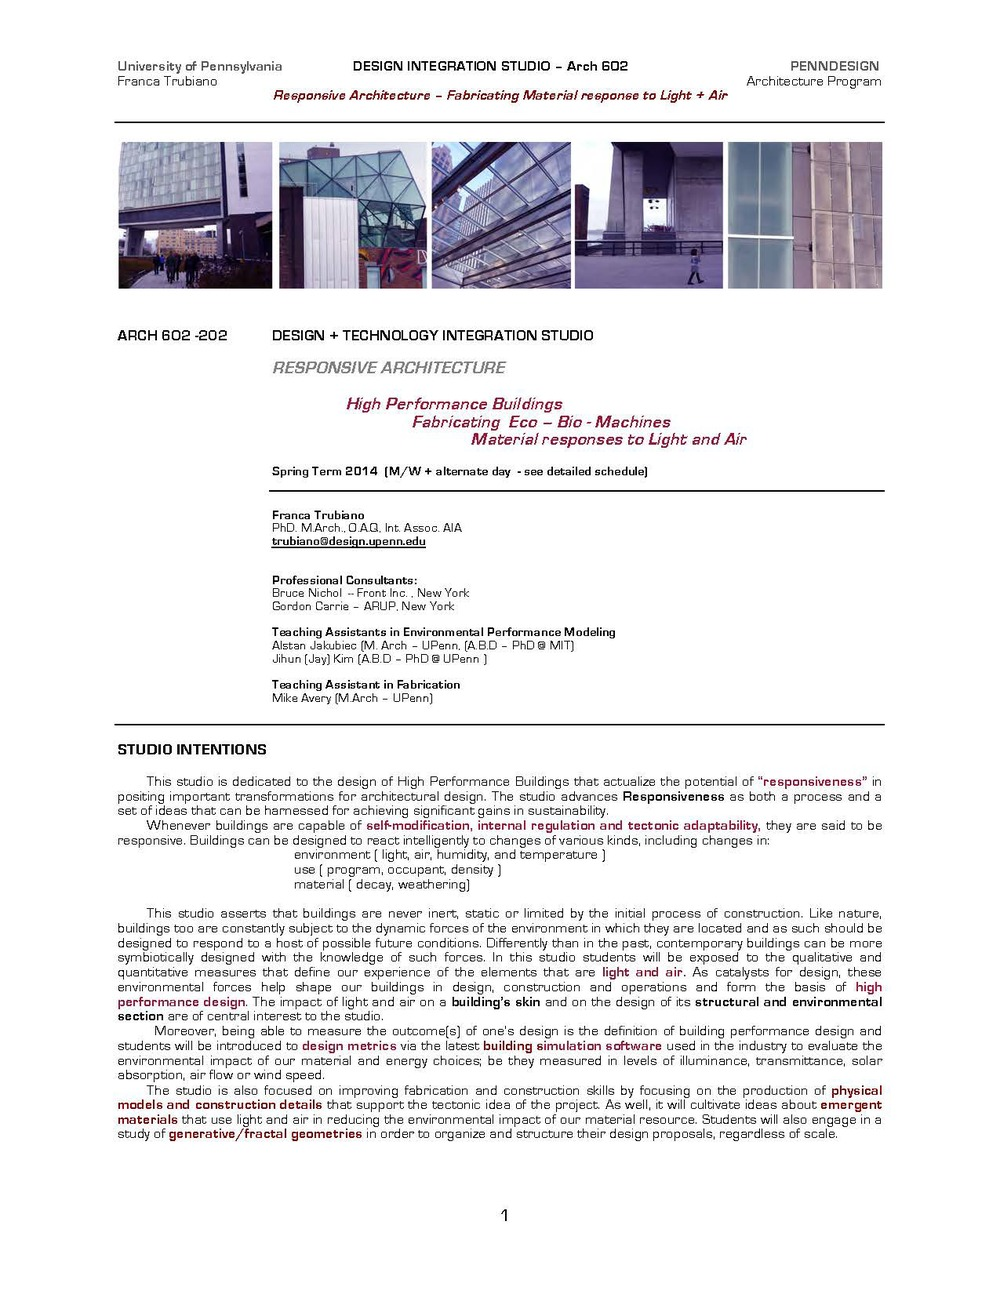 ARCH602.syllabus.2014.01.14.red_Page_1.jpg